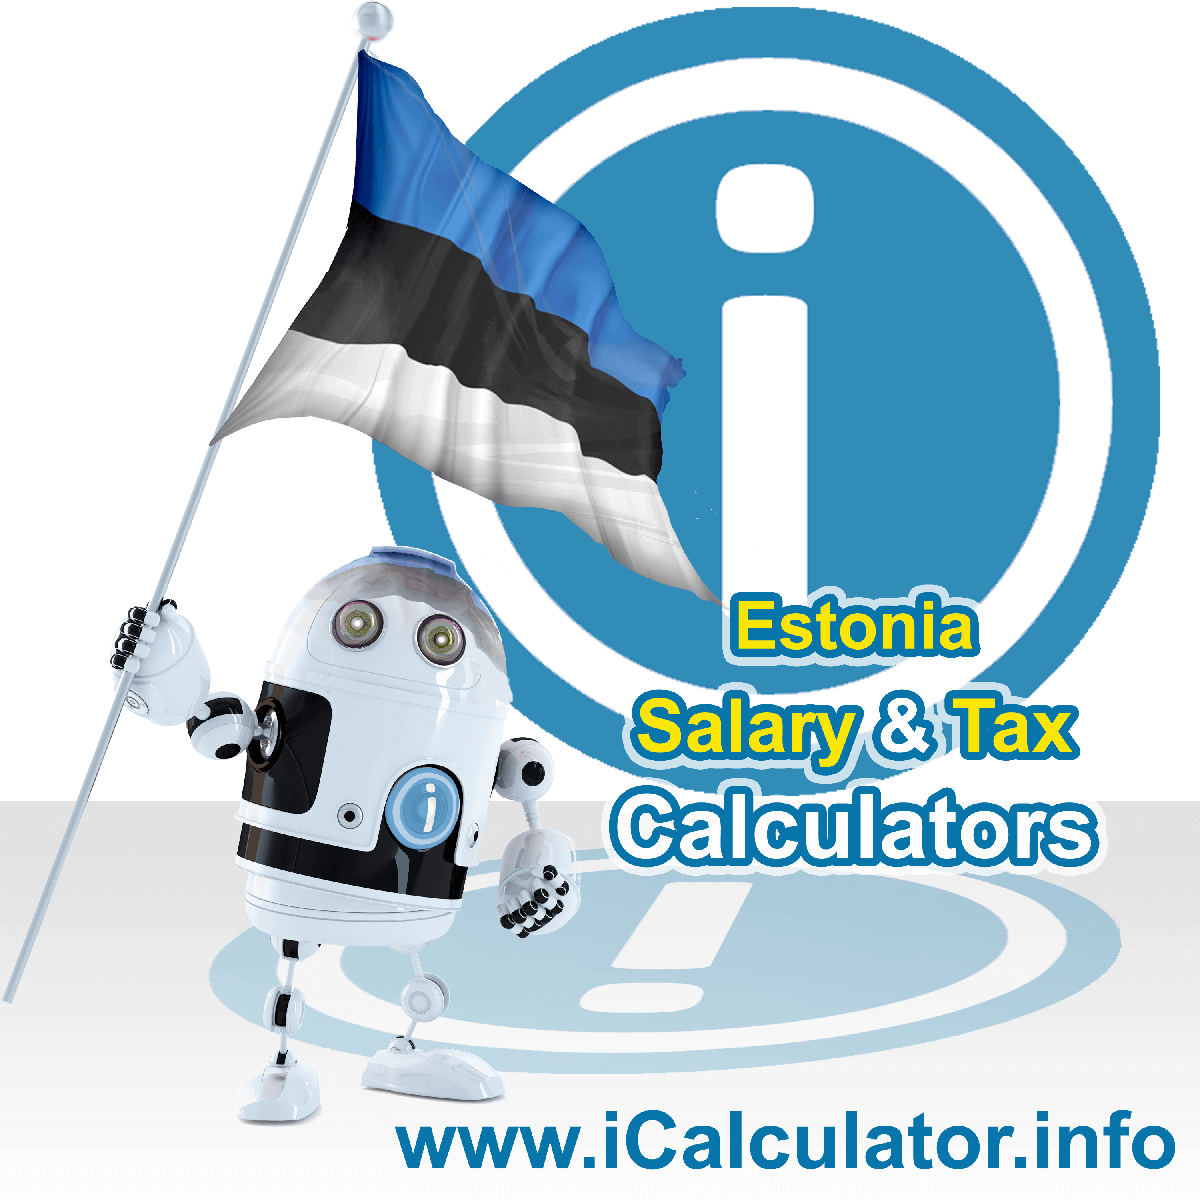 Estonia Tax Calculator. This image shows the Estonia flag and information relating to the tax formula for the Estonia Salary Calculator